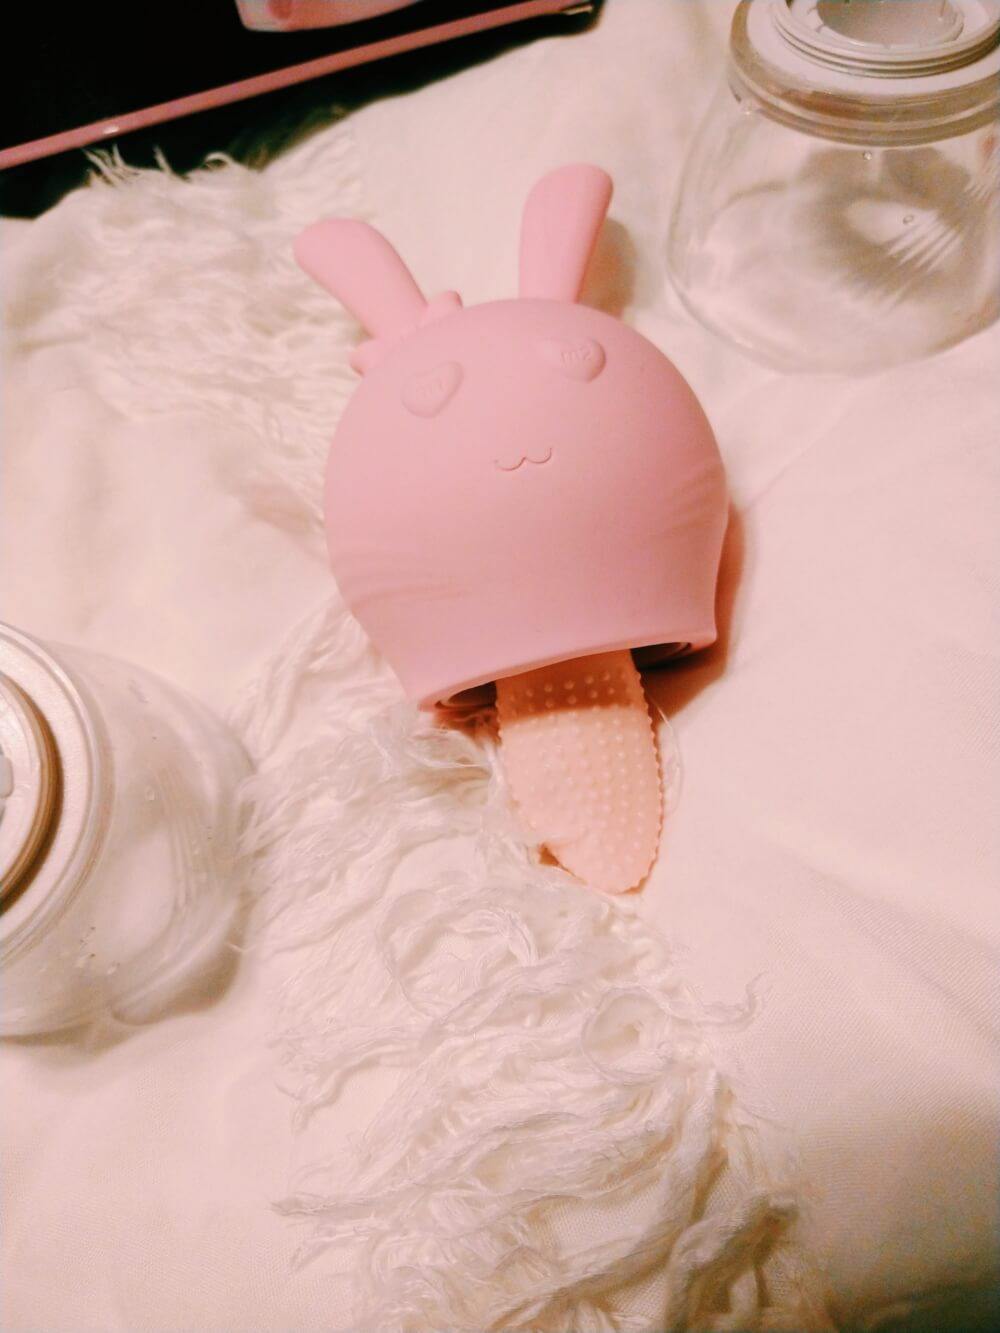 Pink rabbit head-shaped tongue vibrator; eyes are hearts and left ear has a bow decoration